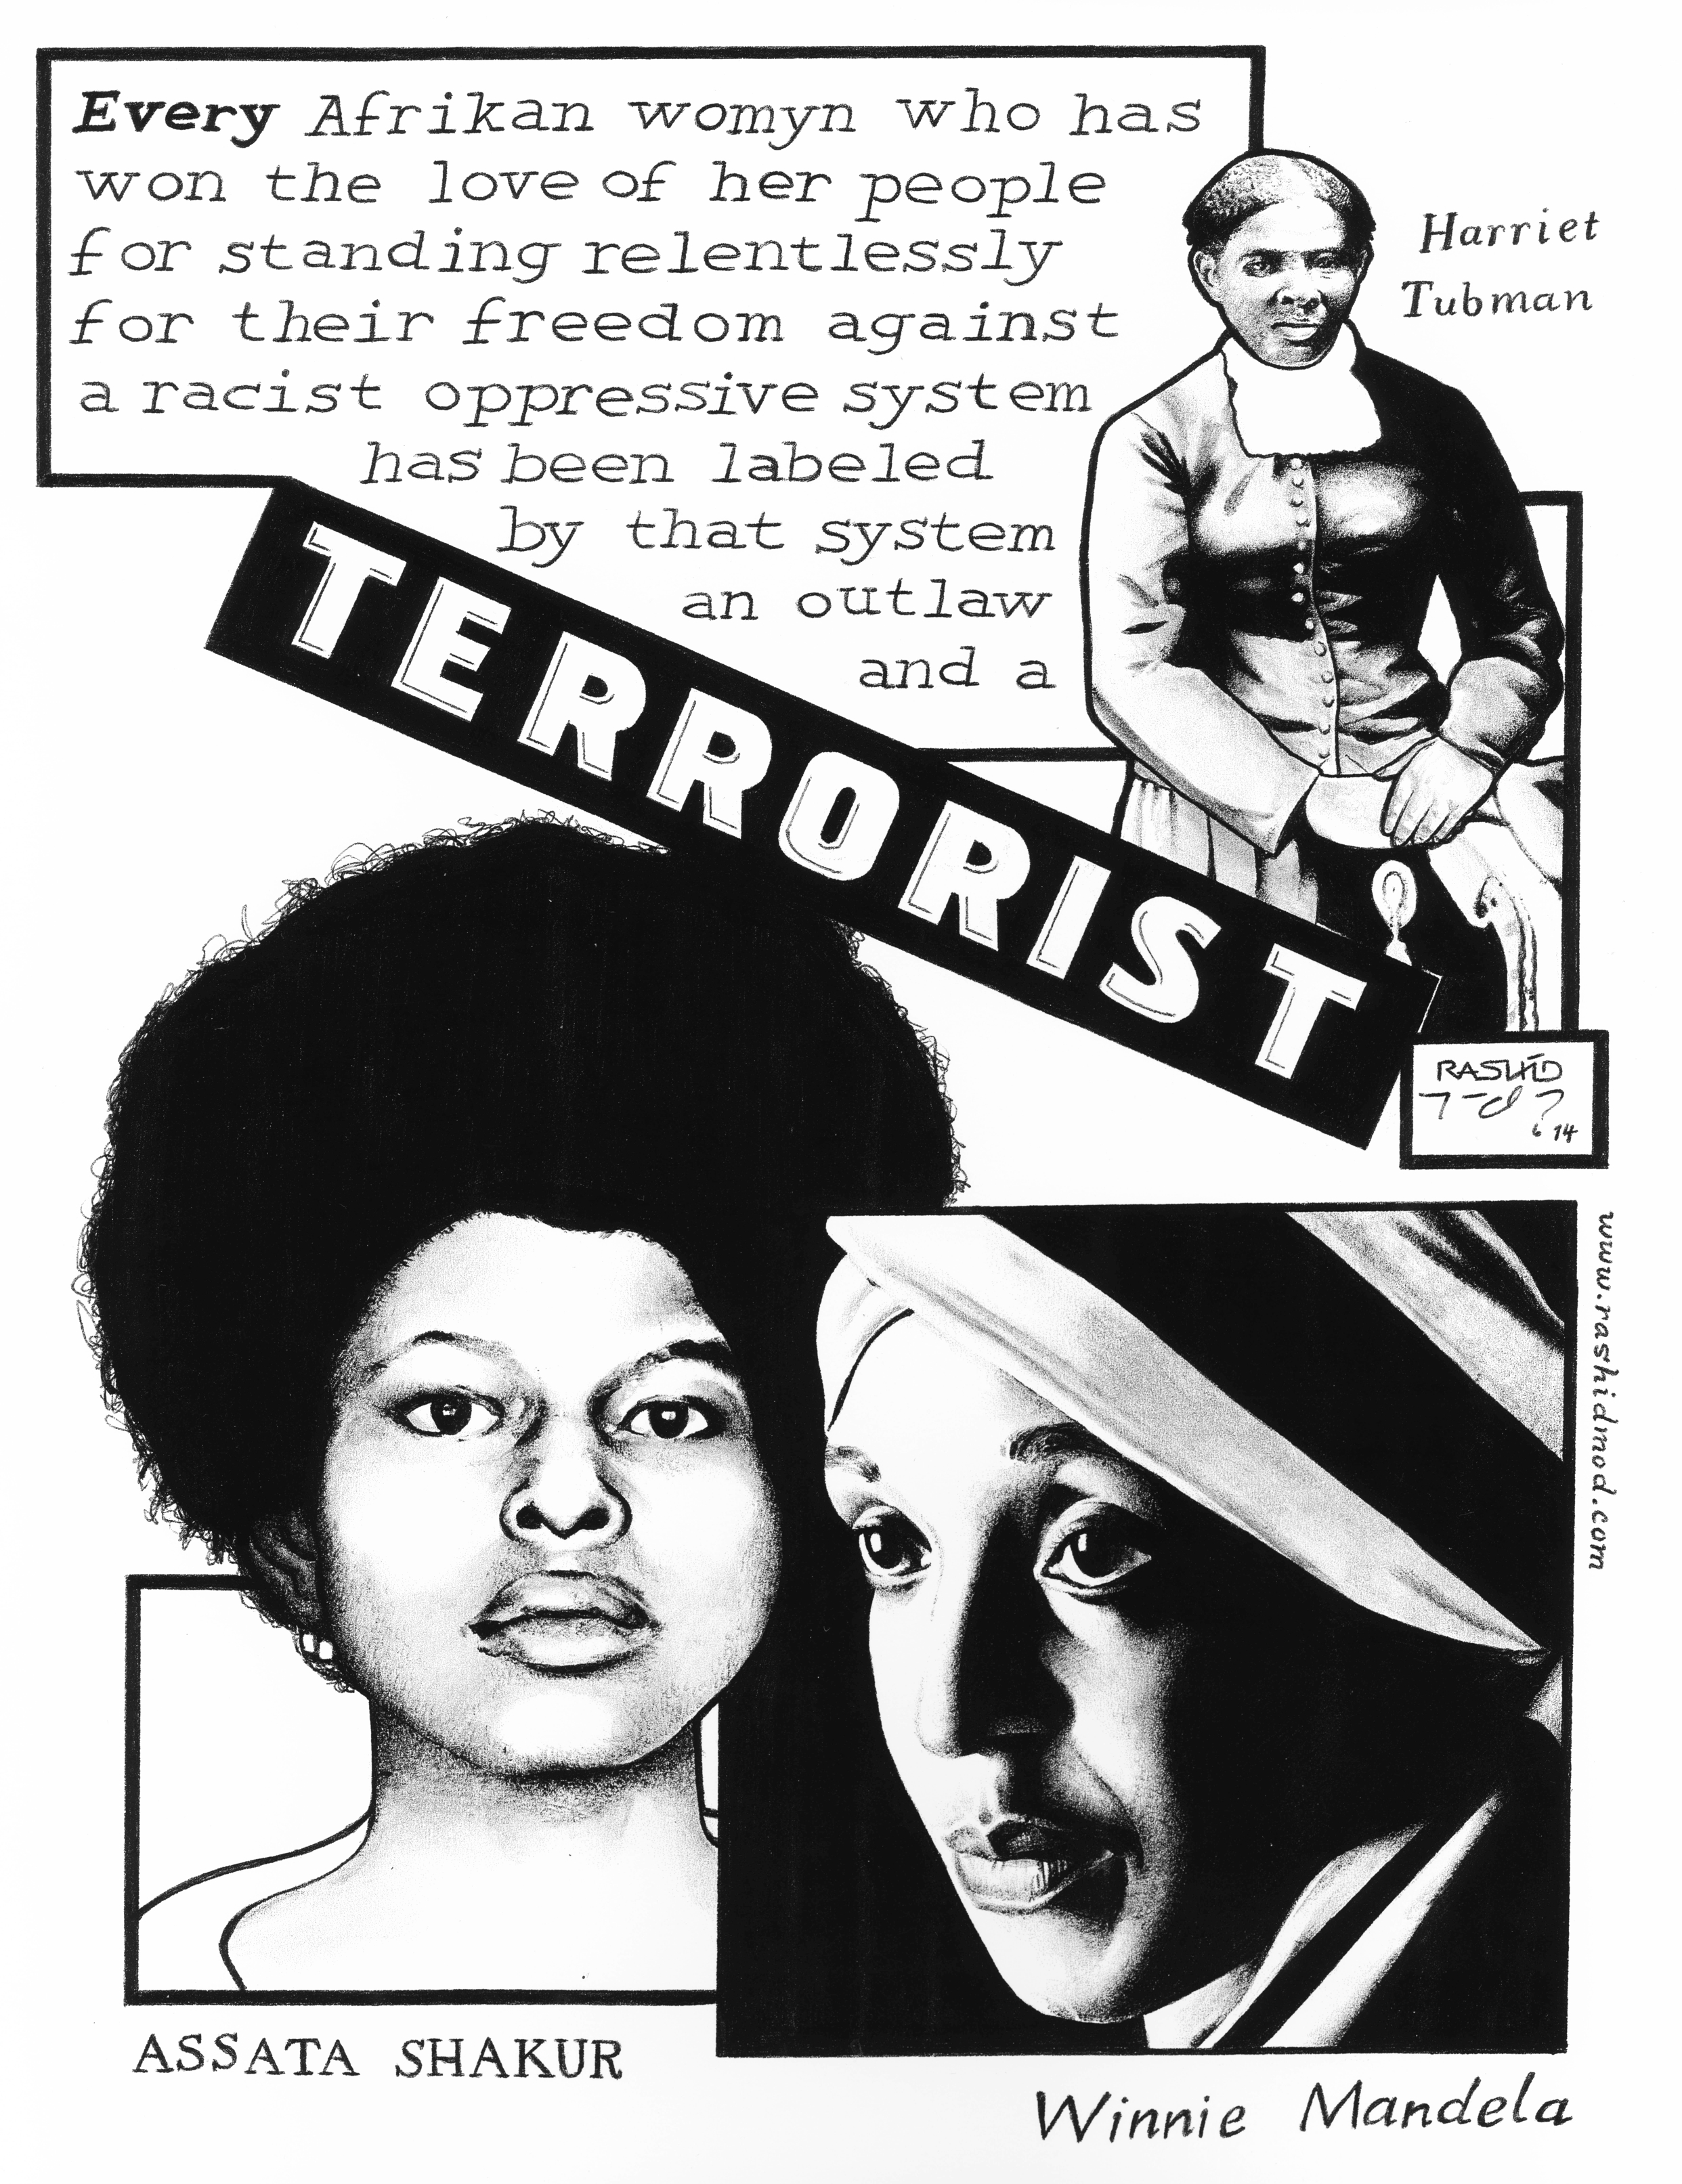 Harriet Tubman, Assata Shakur, Winnie Mandela